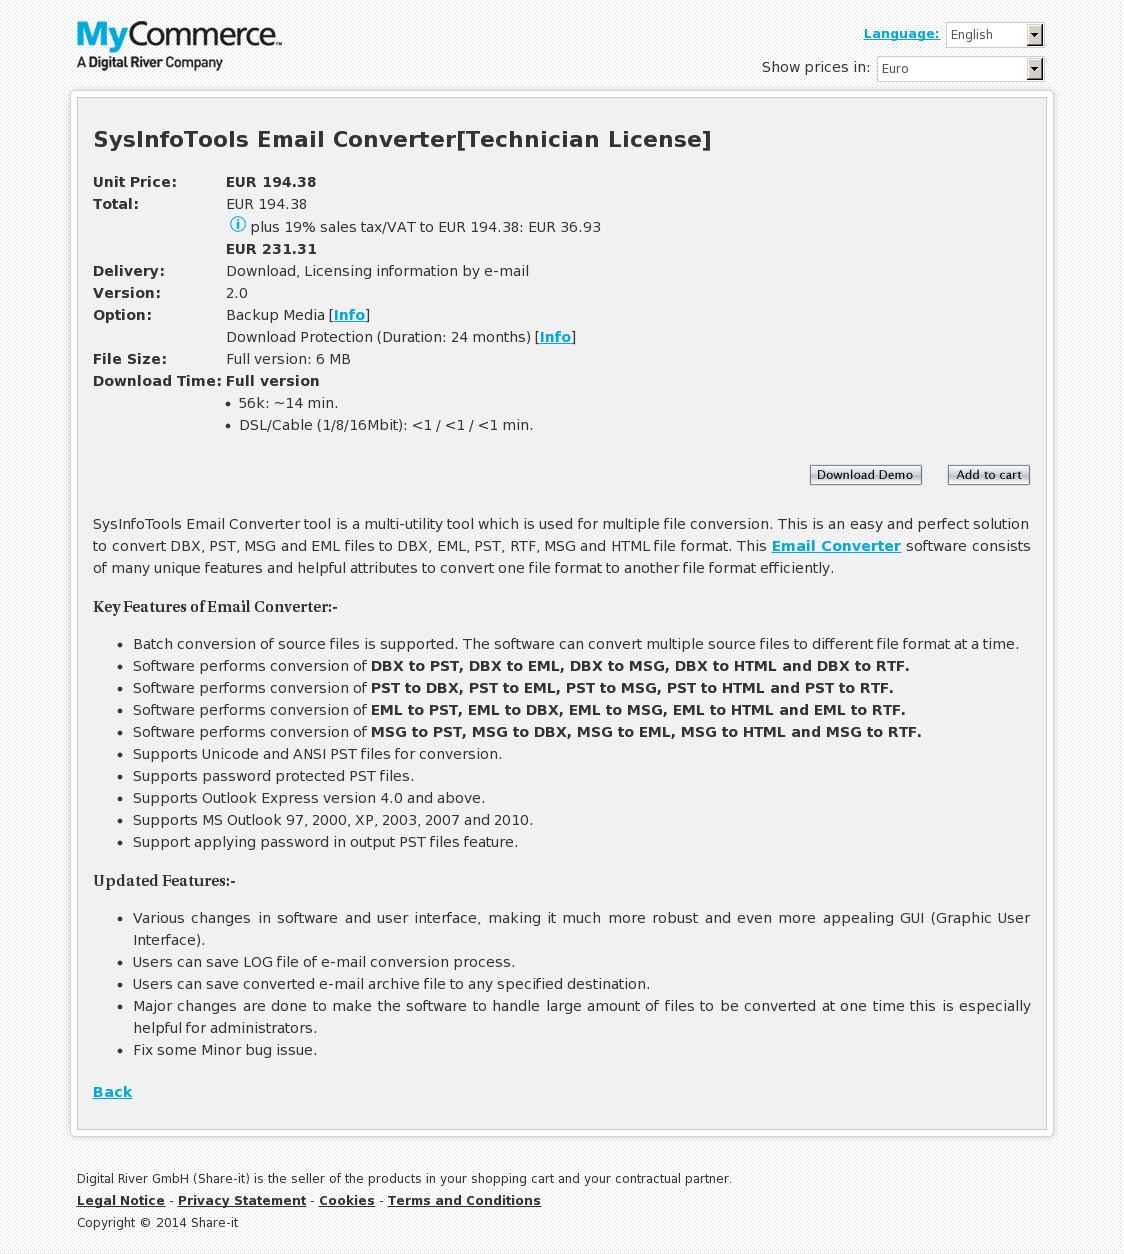 SysInfoTools Email Converter[Technician License]